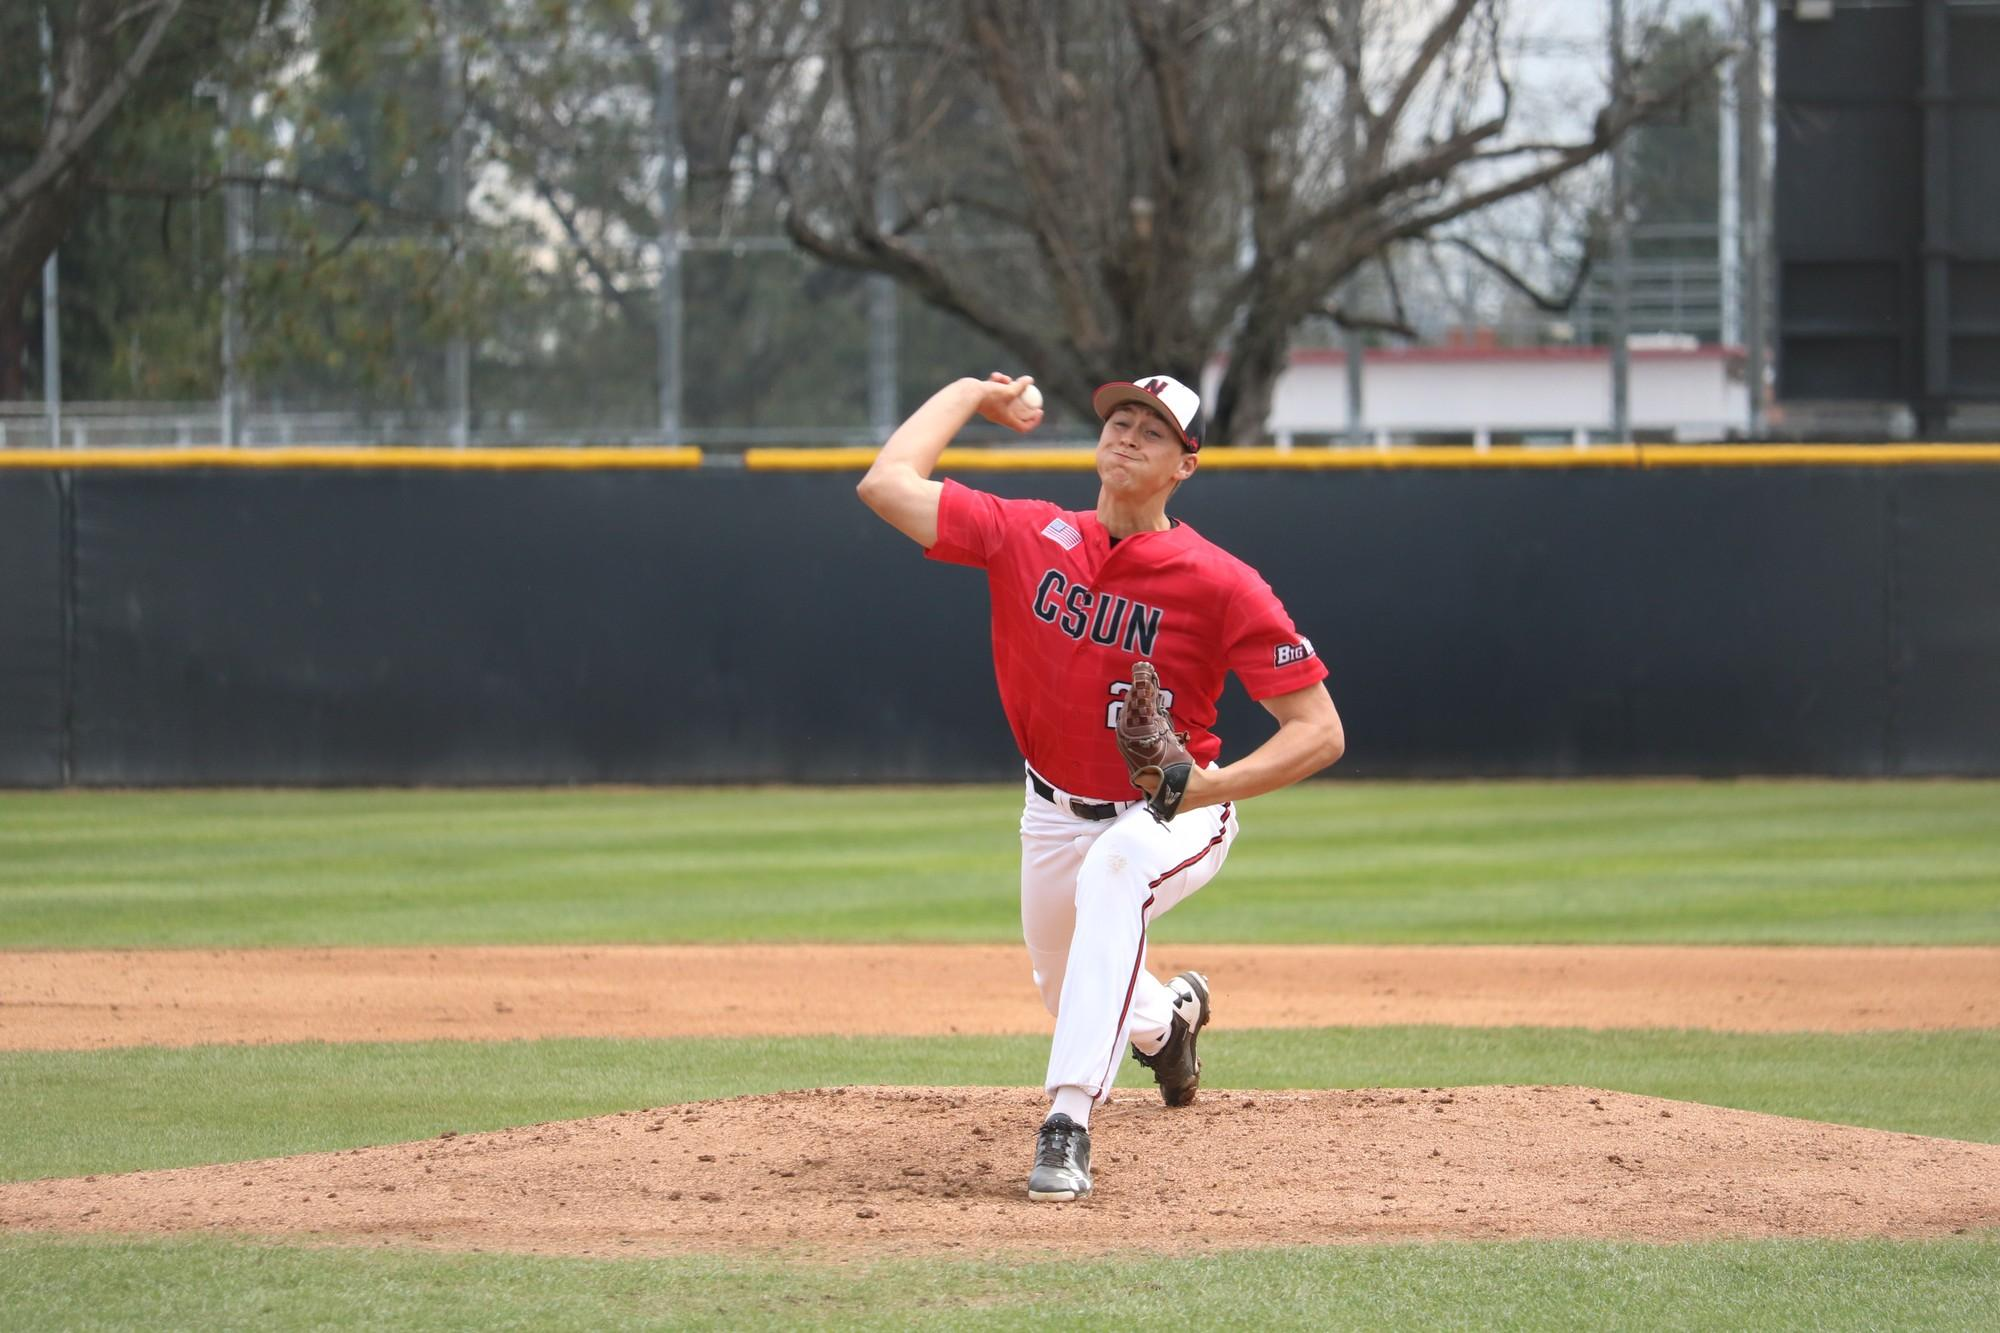 CSUN's sophomore right handed pitcher, Matt Campbell, pitches during the second inning against the Towson Tigers, on Sunday, Feb. 26, at the Matador Field. Photo credit: Lauren Valencia